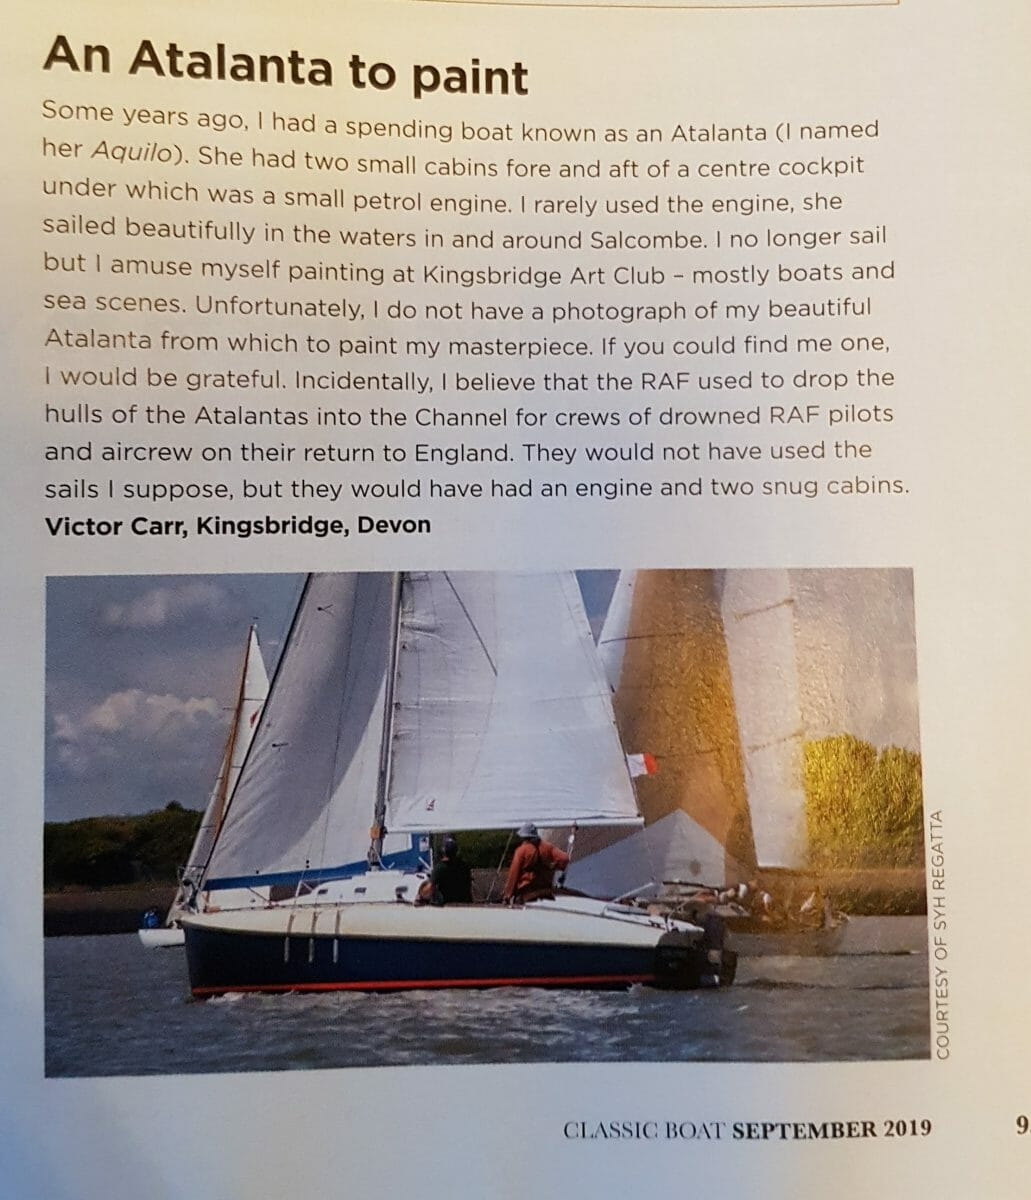 Ex Owner seeks photos of Aquilo sailing for a painting